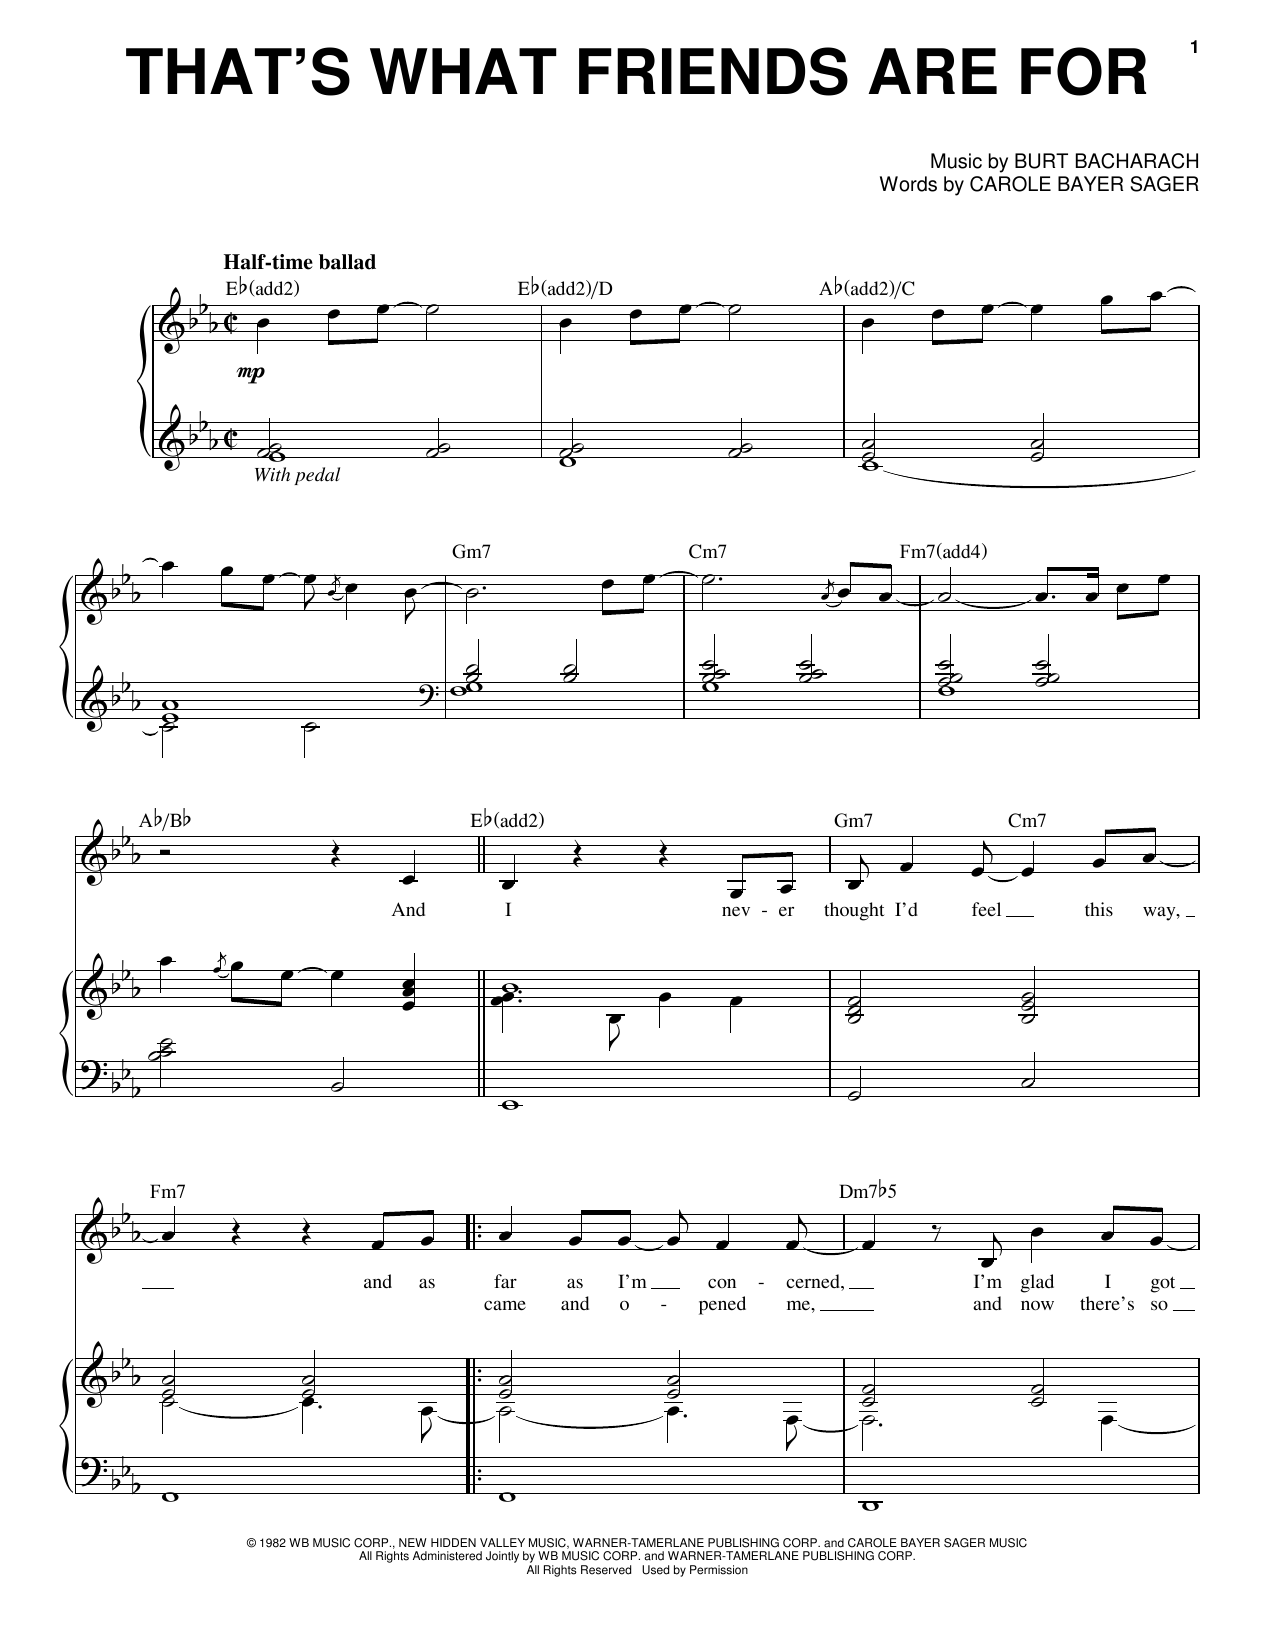 Dionne Friends That S What Friends Are For Sheet Music Notes Chords Download Rock Notes Piano Vocal Pdf Print 155812